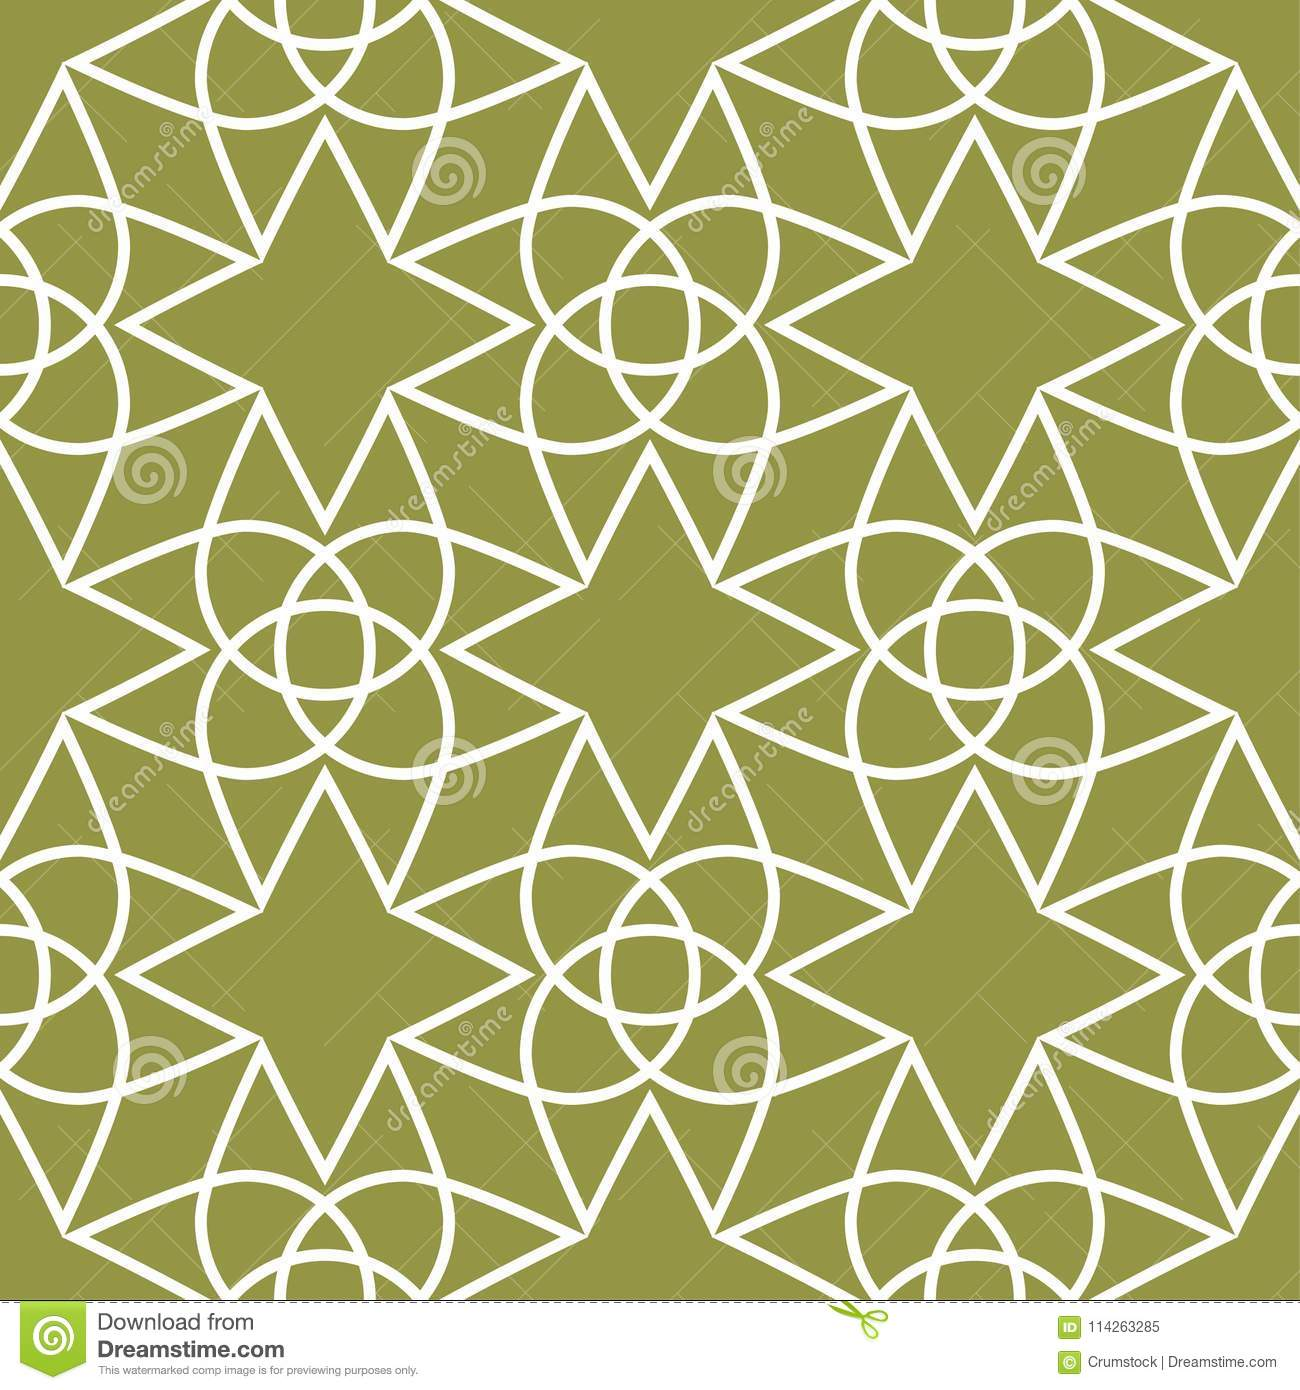 Olive green and white geometric ornament. Seamless pattern